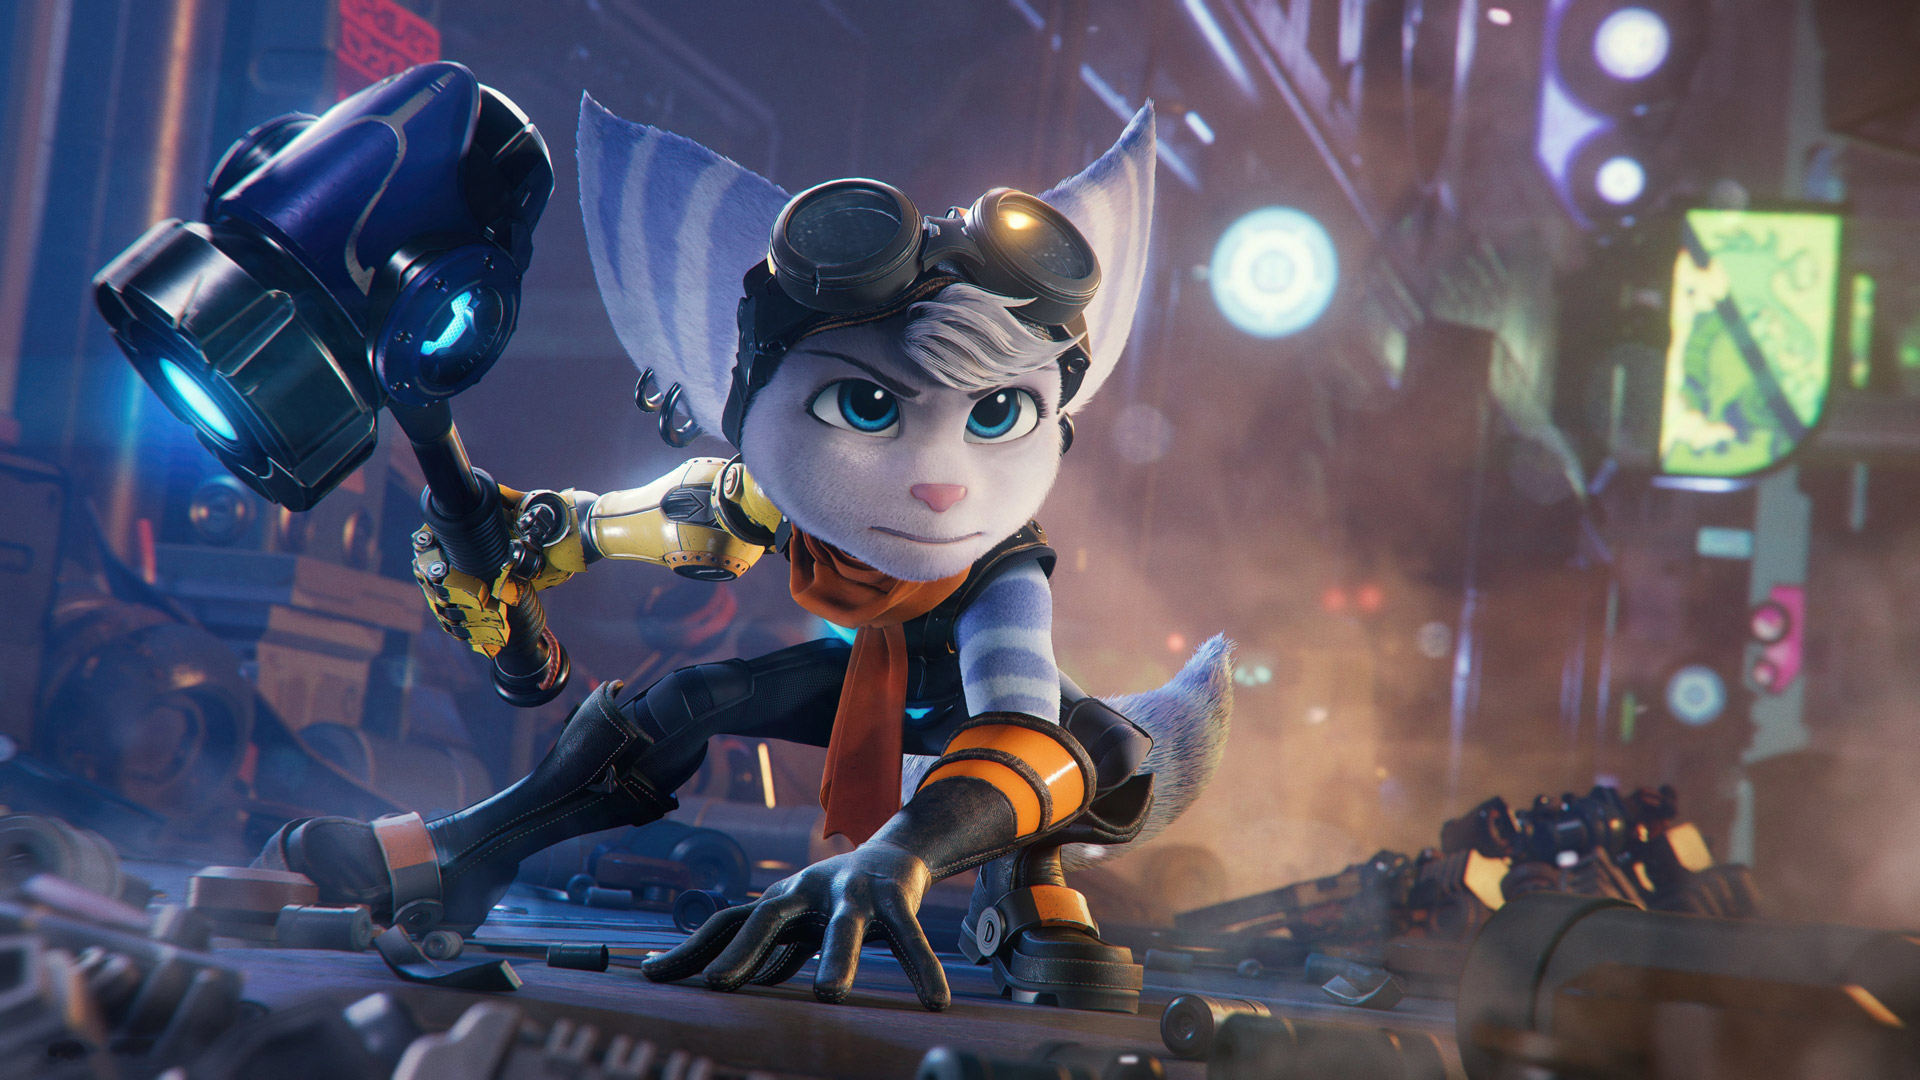 Free Ratchet & Clank: Rift Apart Wallpaper in 1920x1080